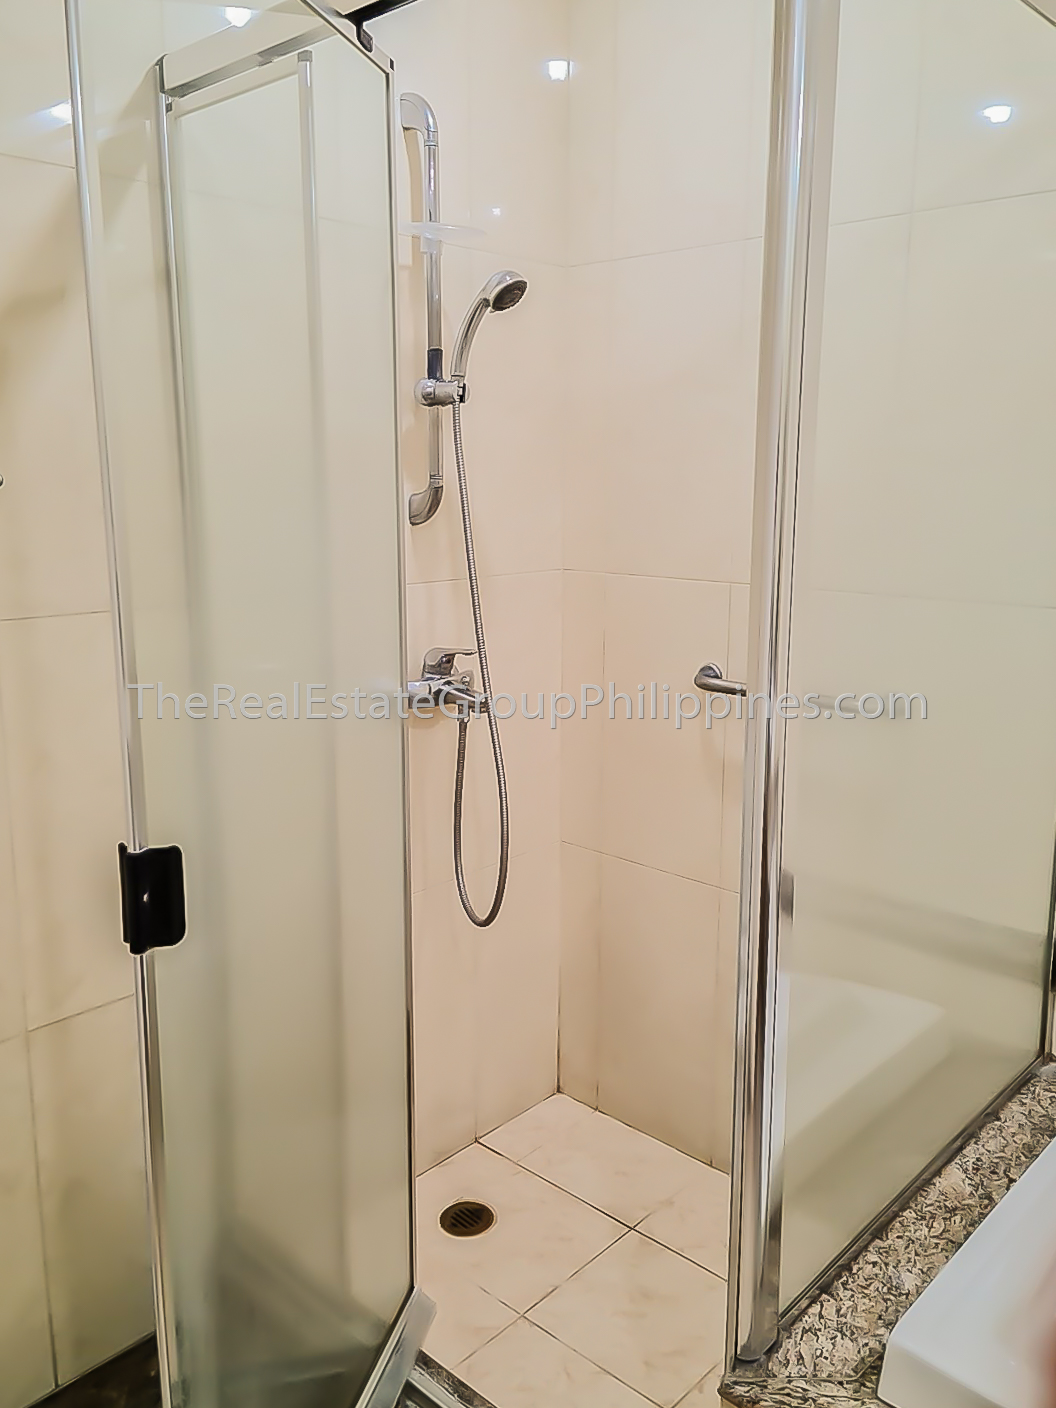 2BR Condo For Rent, The Shang Grand Tower, Legaspi Village, Makati-7